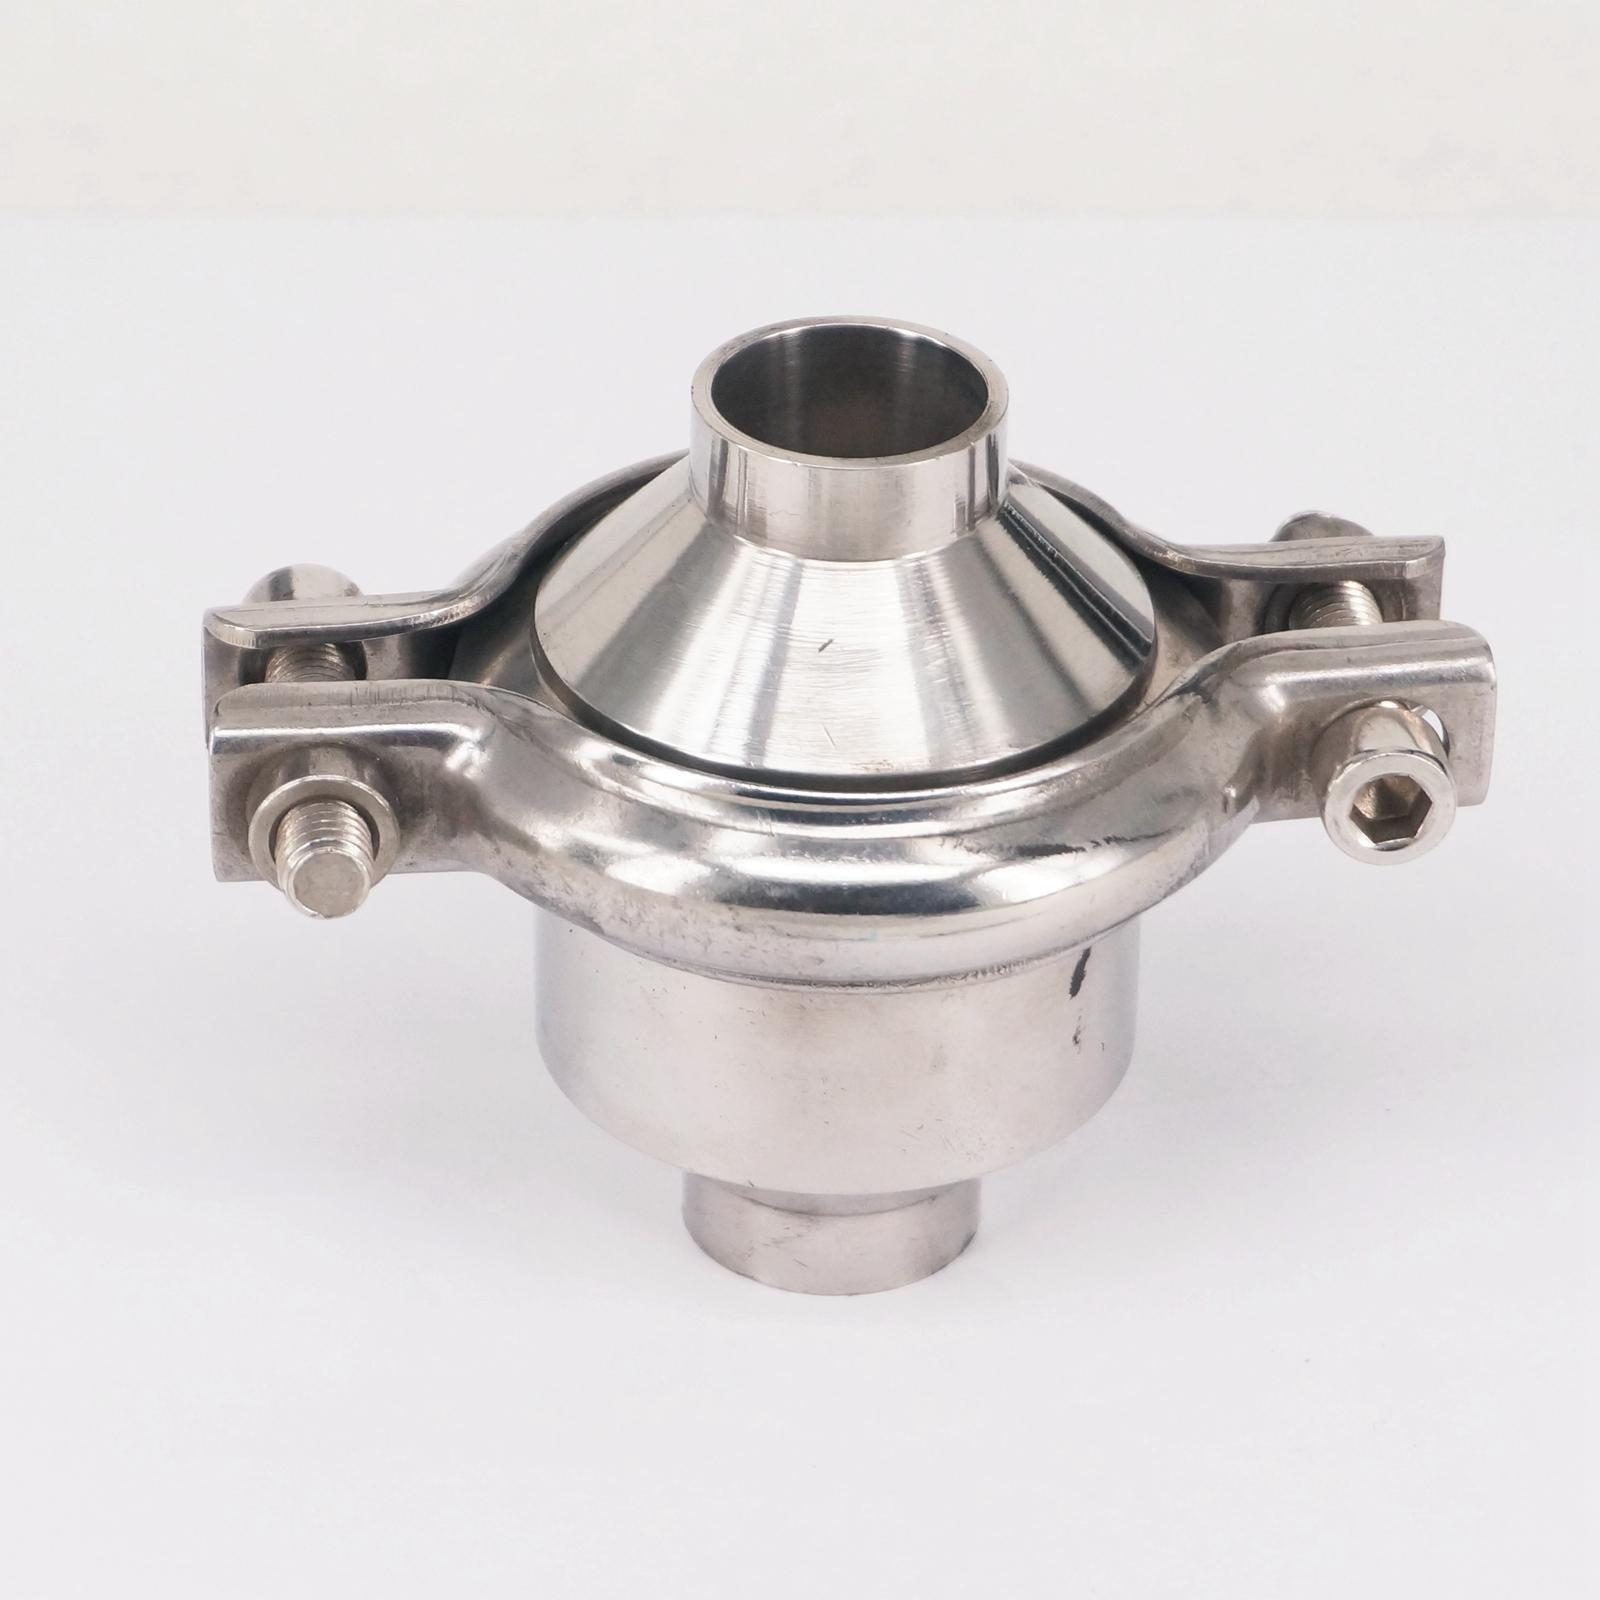 Fit 38mm 1-1/2 Pipe OD Butt Welding SUS 304 Stainless Sanitary Check Valve Non-Return For Home Brew Beer 229 PSIFit 38mm 1-1/2 Pipe OD Butt Welding SUS 304 Stainless Sanitary Check Valve Non-Return For Home Brew Beer 229 PSI